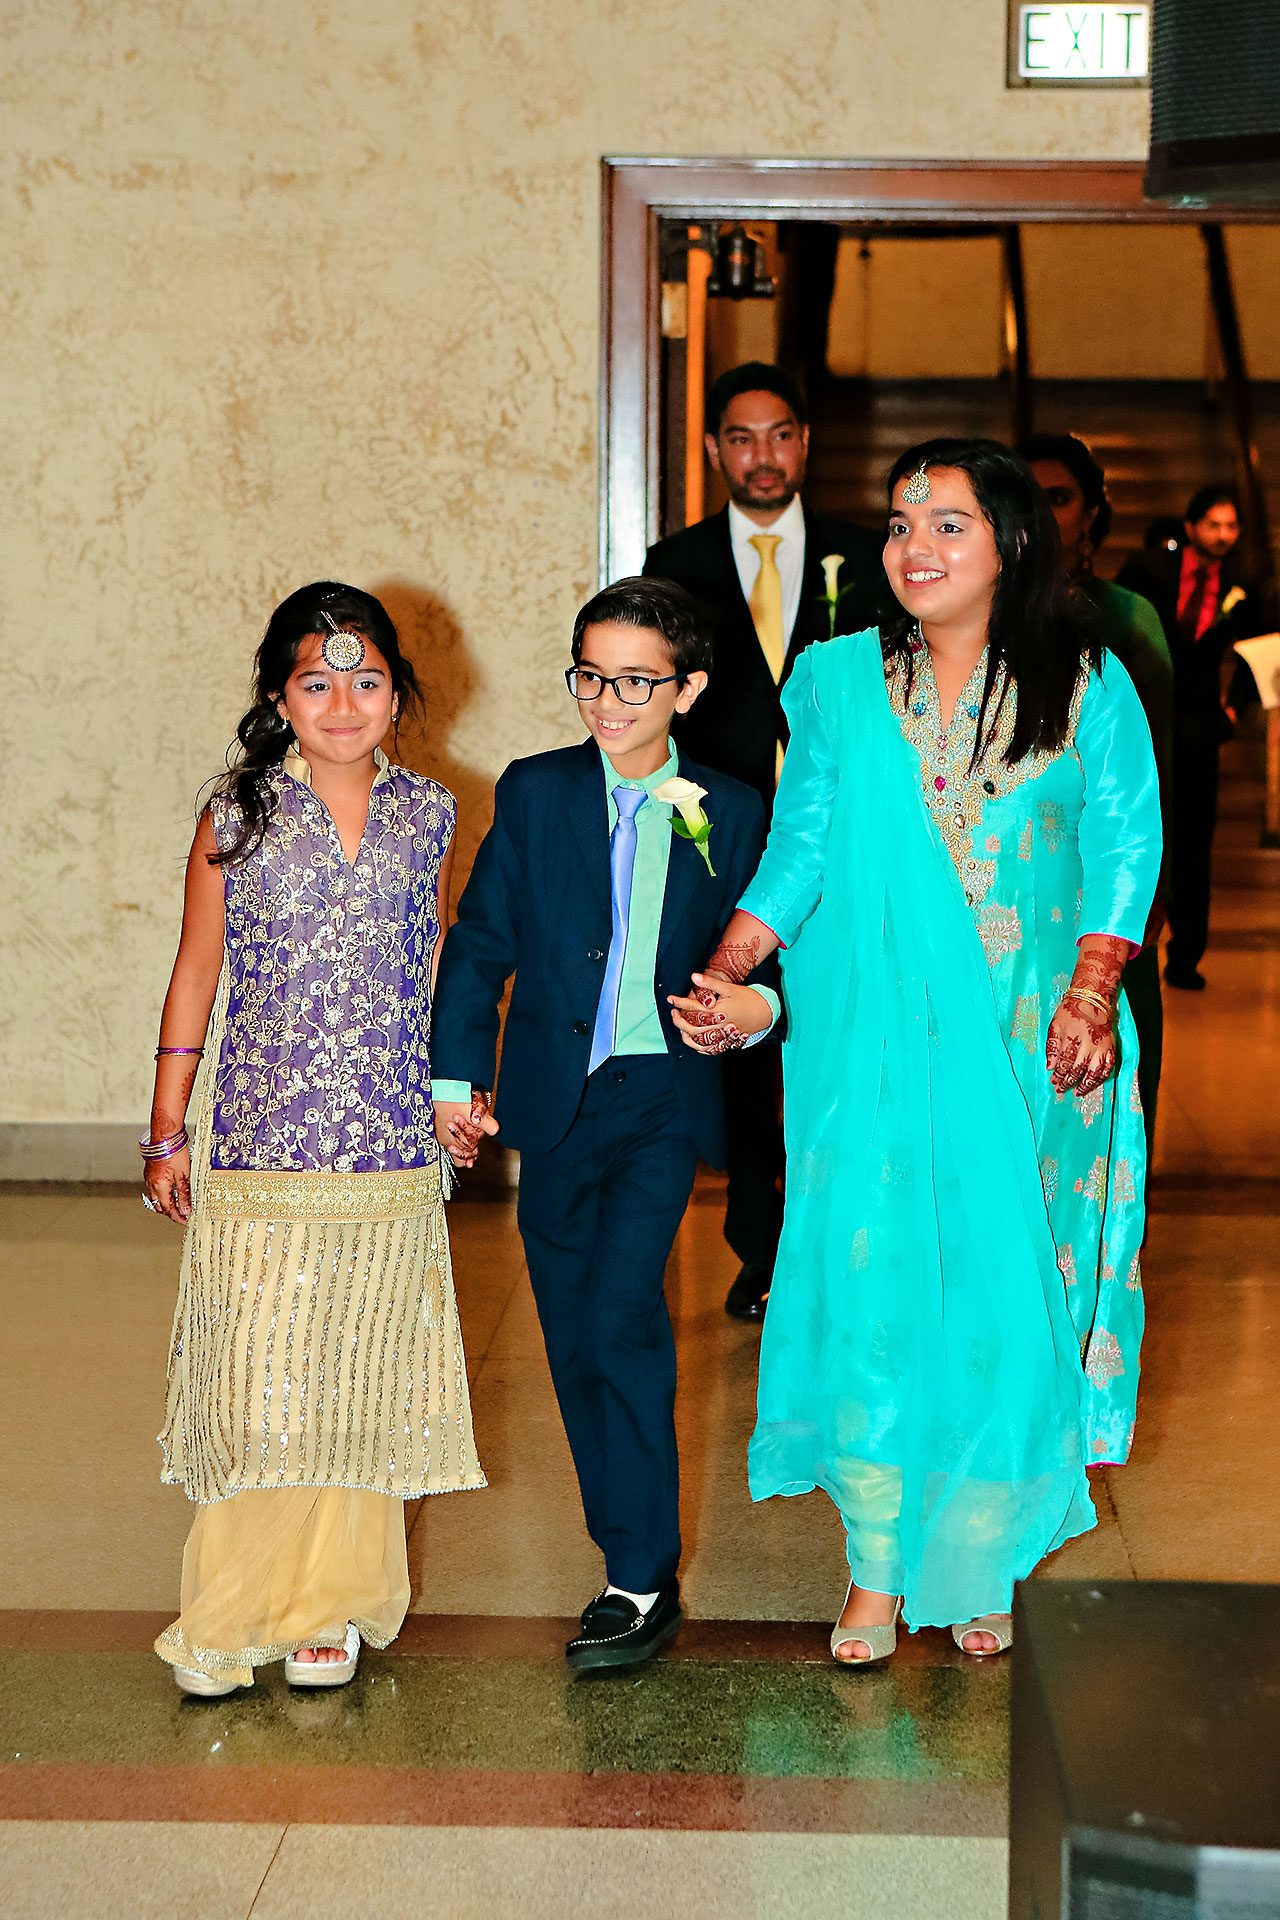 Haseeba Ammar Indianapolis Pakistani Wedding Reception 277